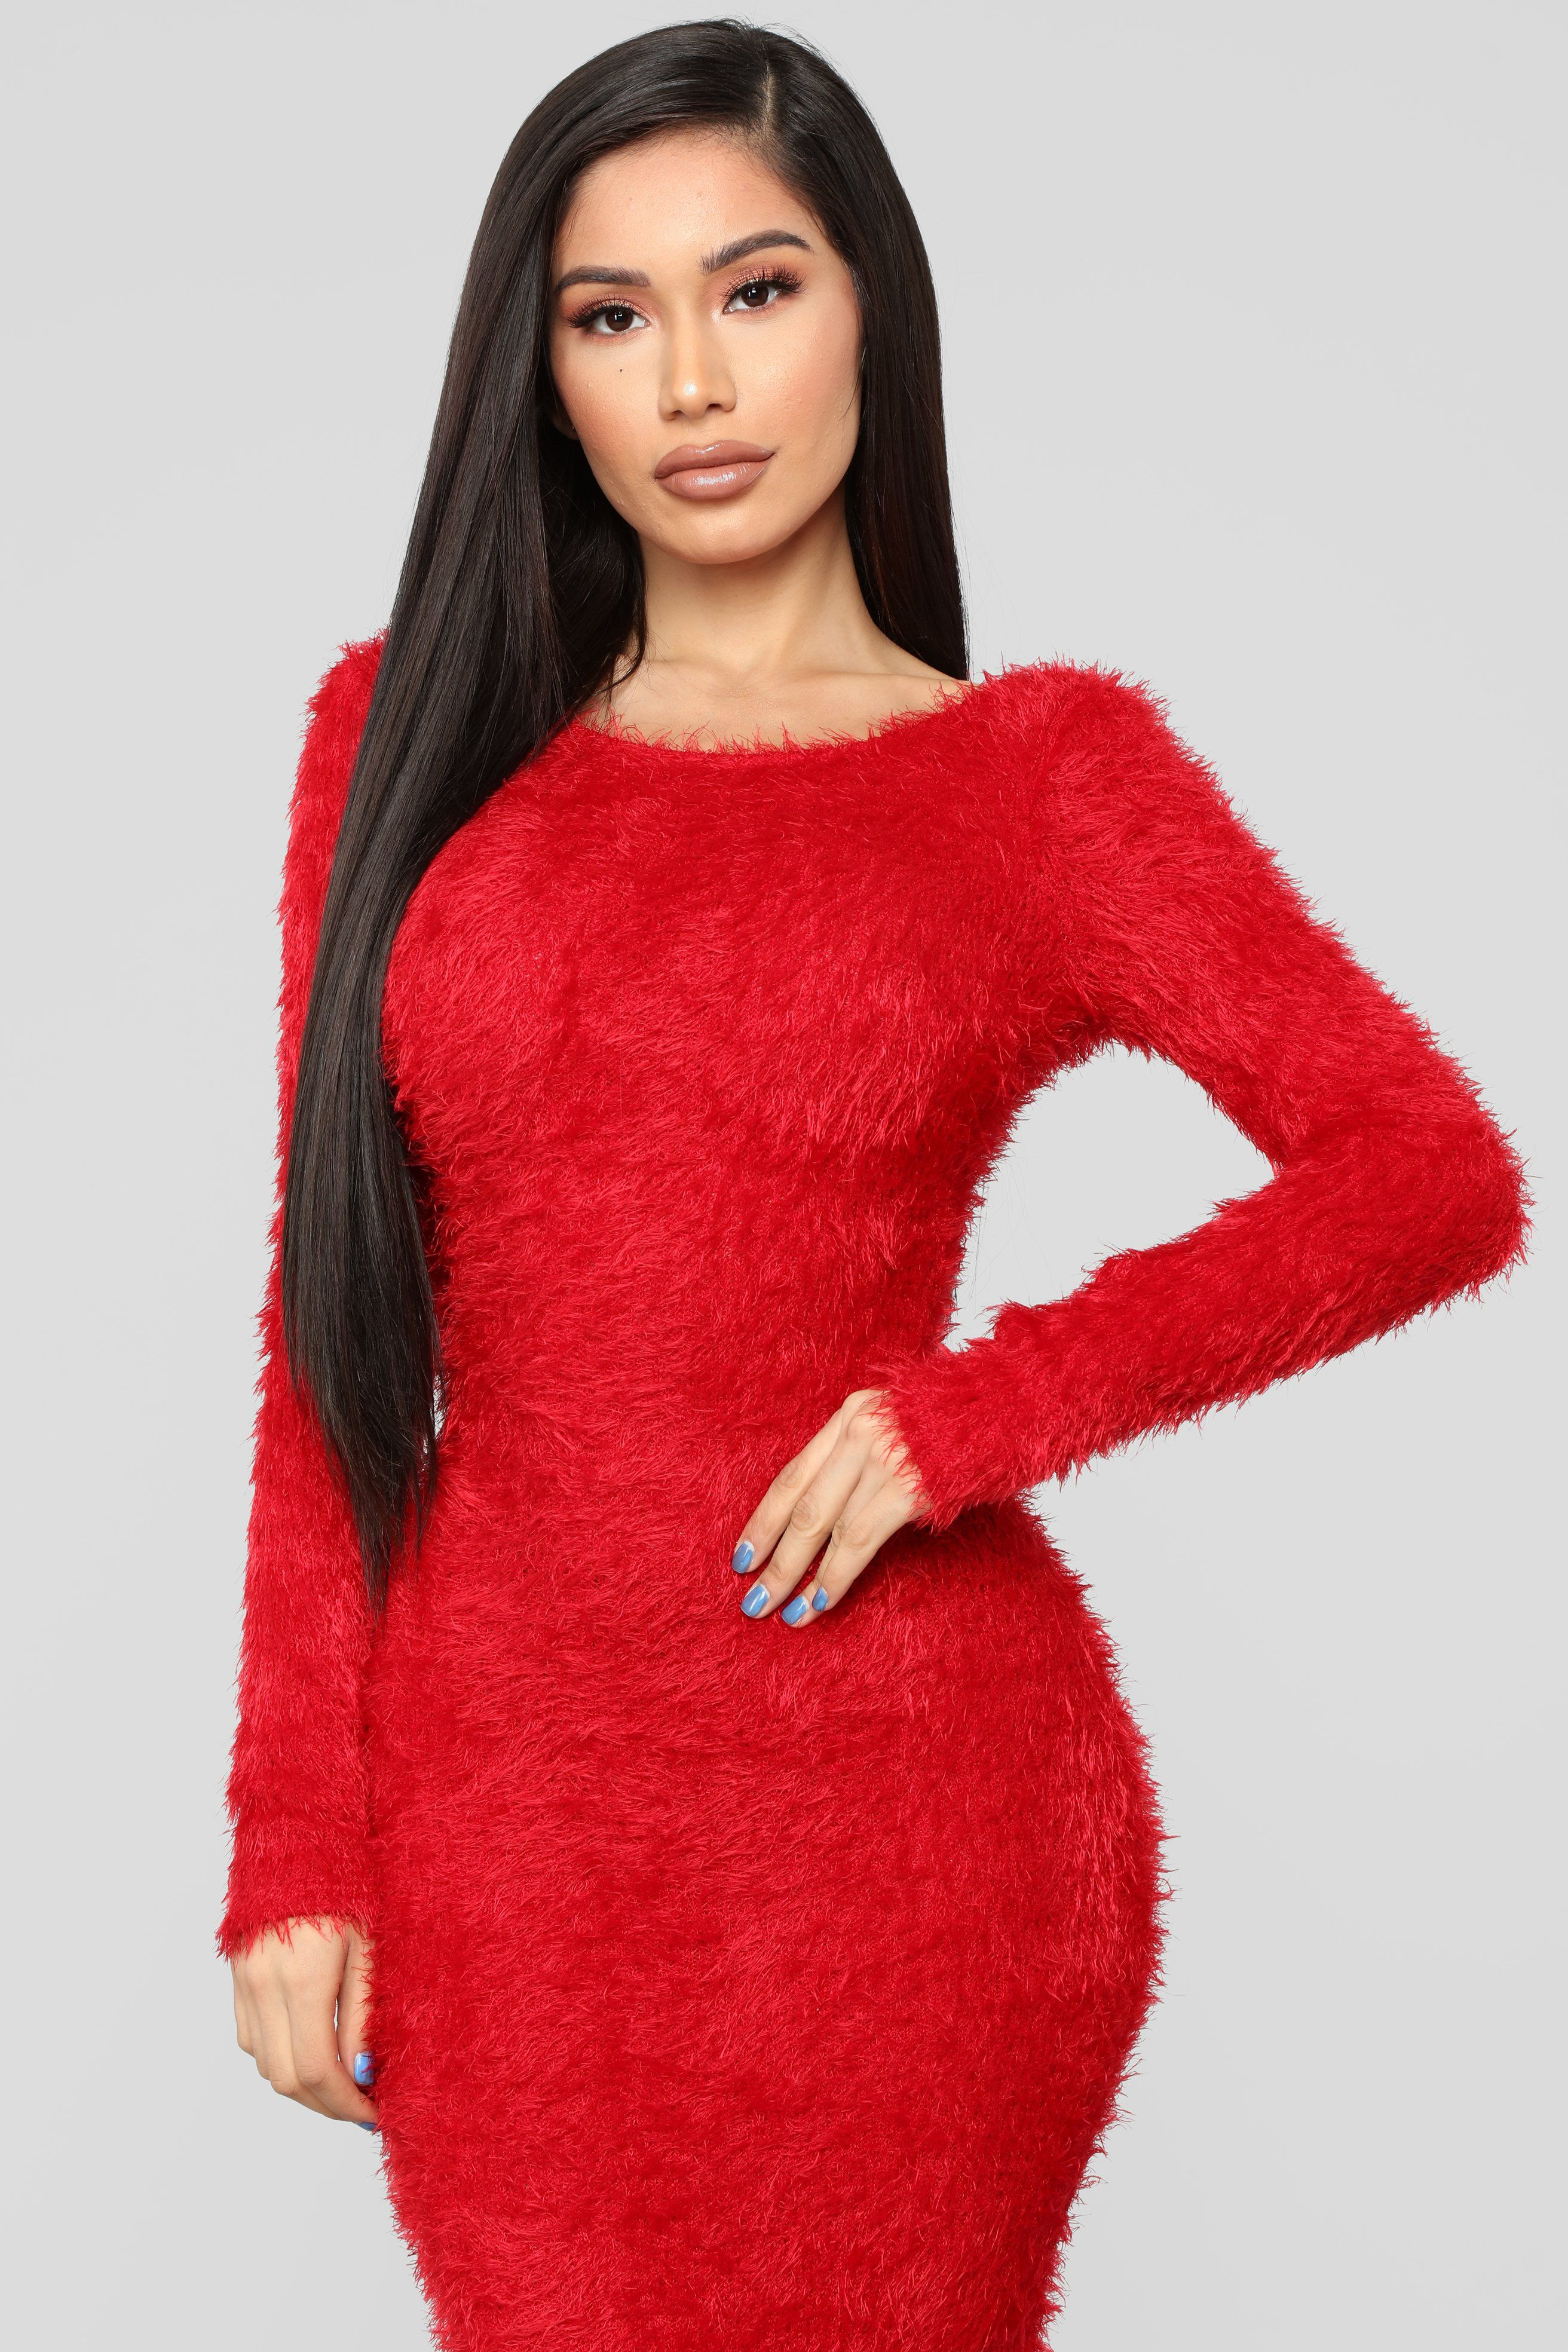 Everything's Fuzzy Maxi Dress Red Red dress outfit